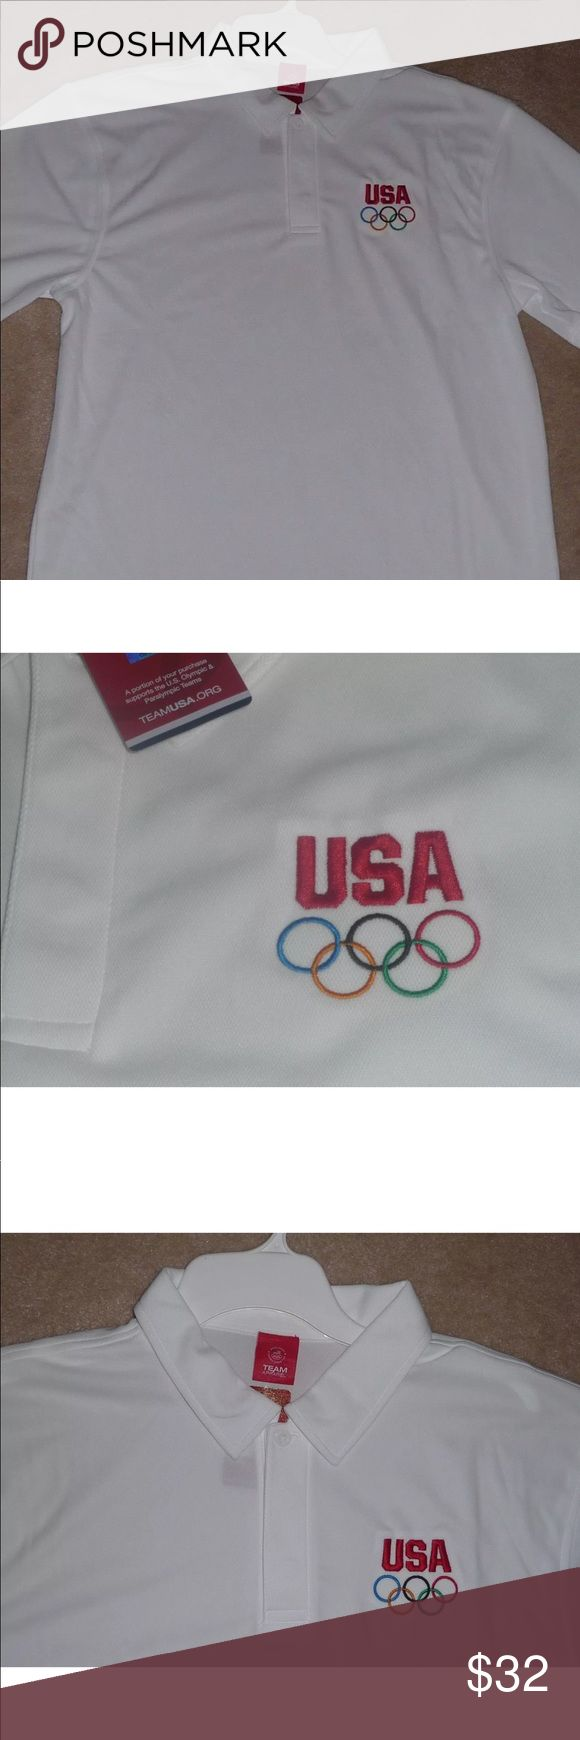 New Official Olympic Polo Golf Shirt XL NEW OFFICIAL OLYMPIC GOLF SHIRT  These shirts run big. Shirts Polos